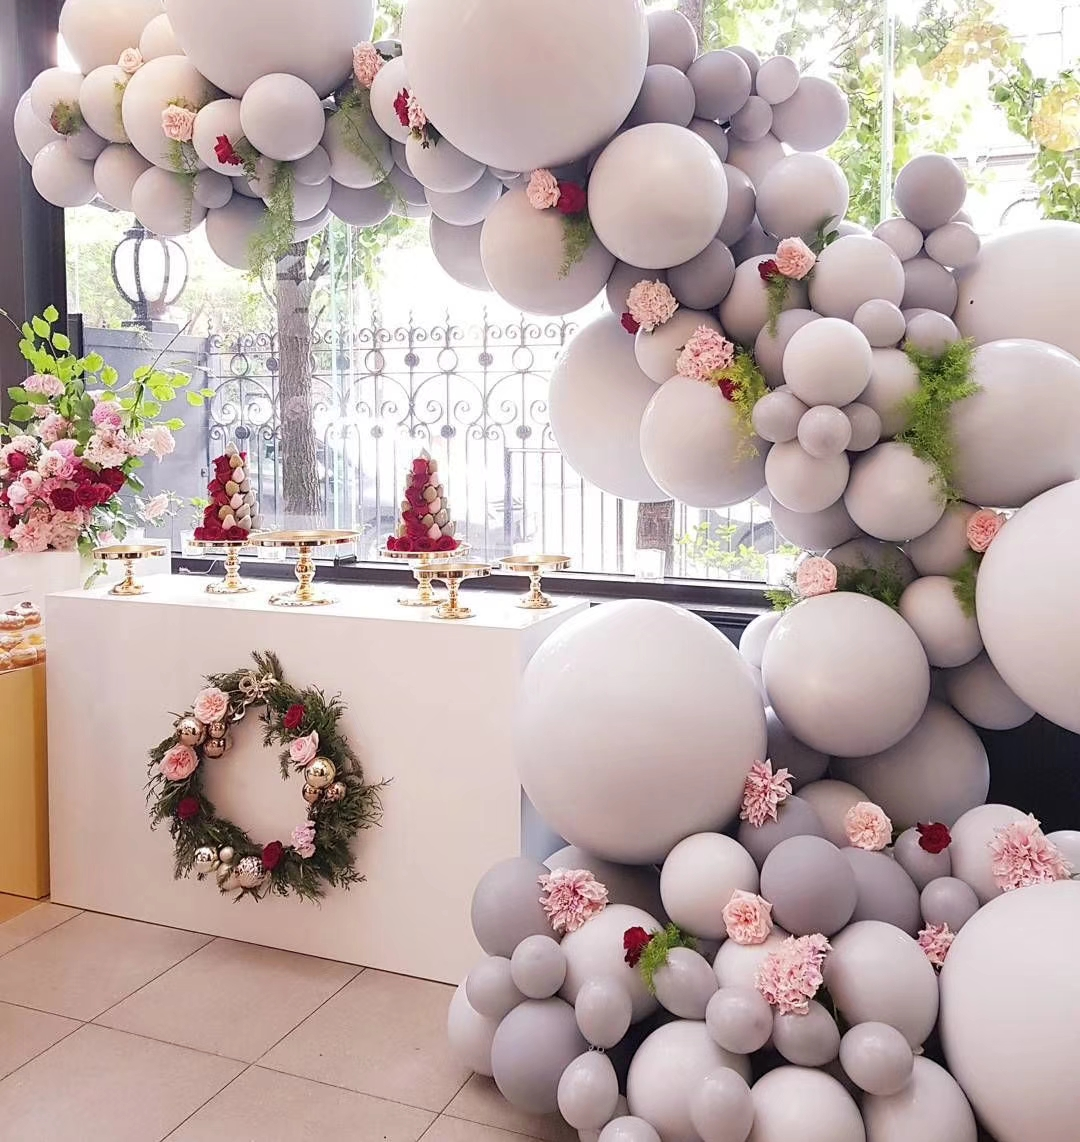 Giant White Round Balloons 18//36 inch Wedding Arch Garland Backdrop Photography